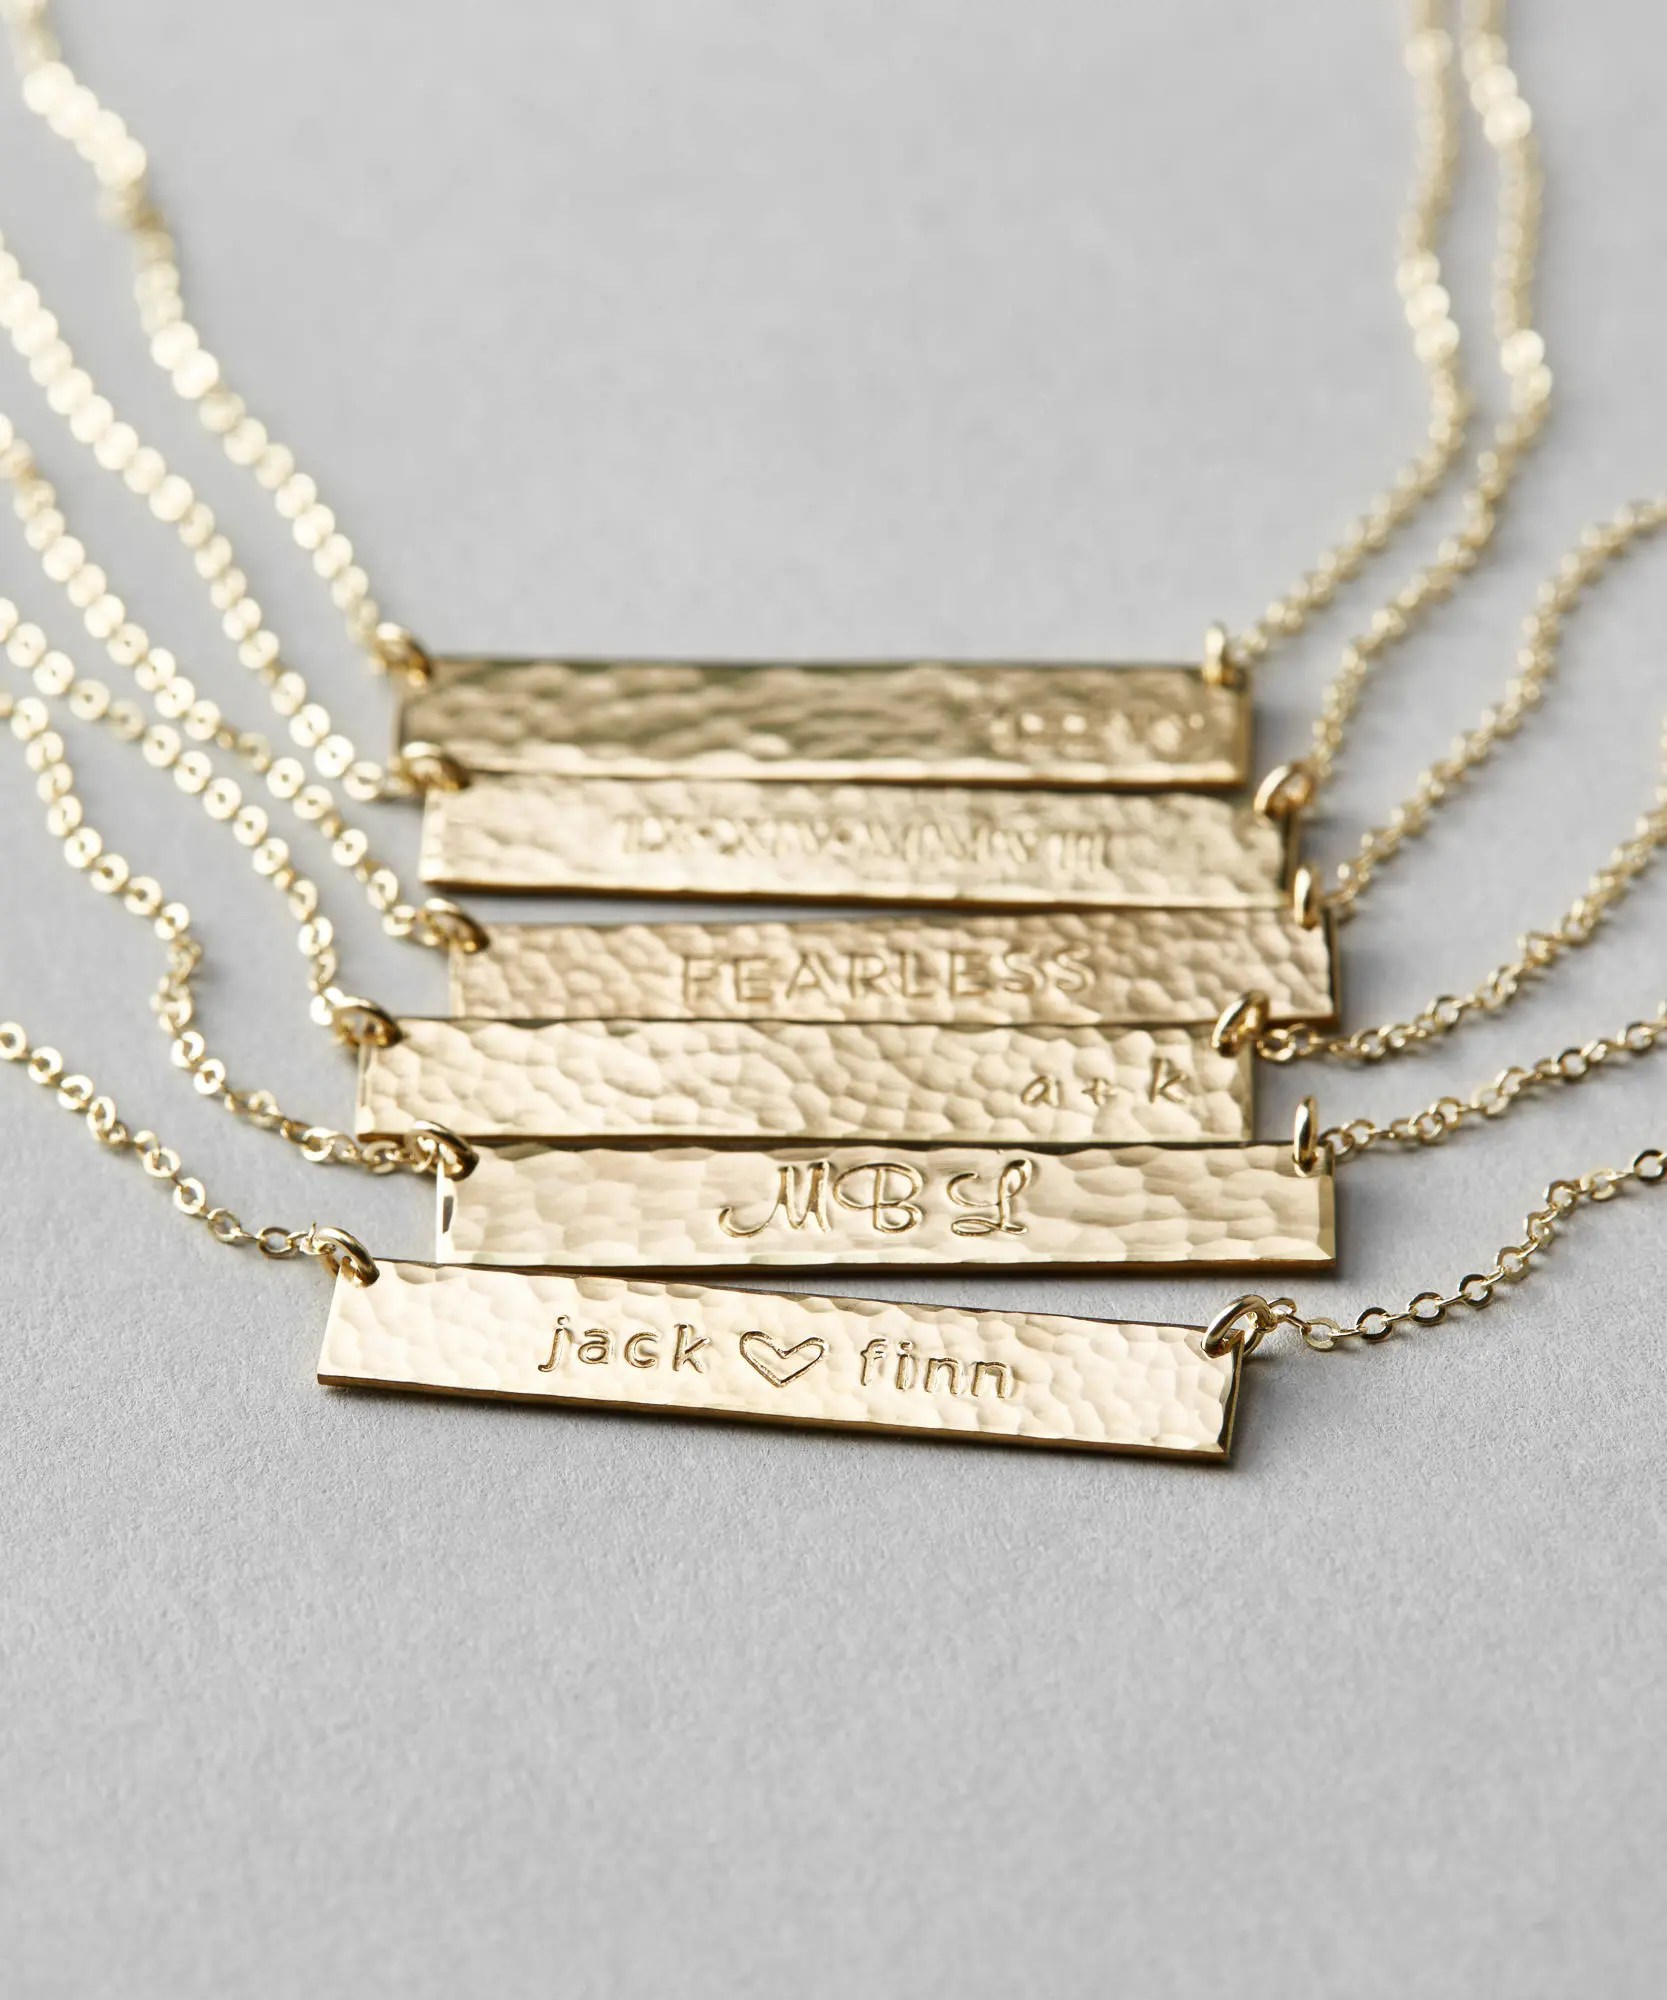 Customized Hammered Name Bar Necklace / Personalized OR Blank Etsy